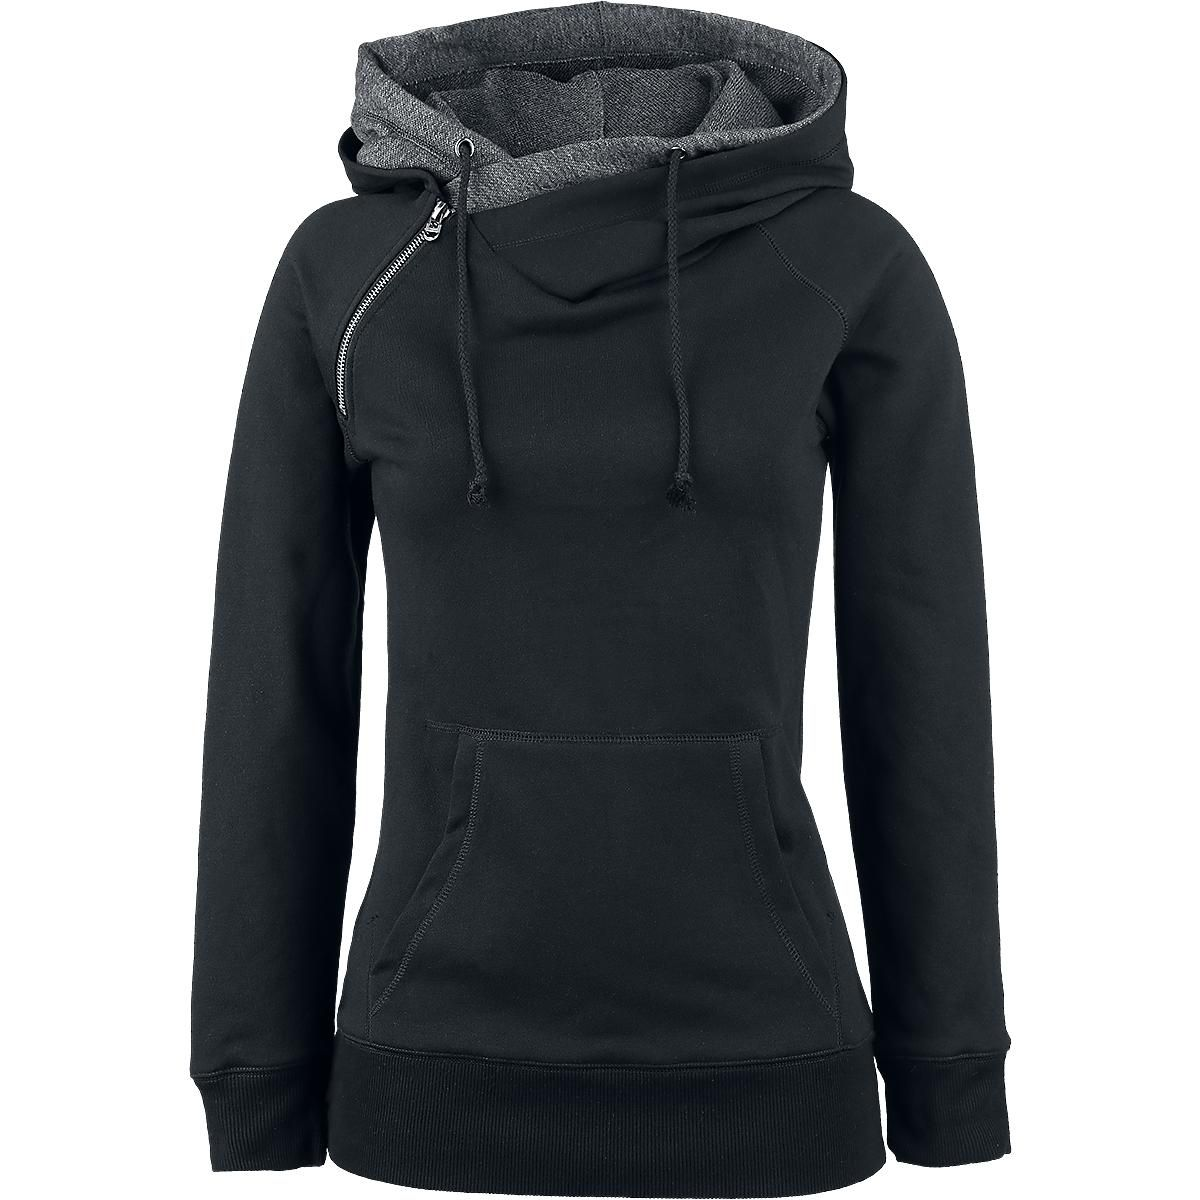 Put this piece of clothing on and feel comfortable: The black ...